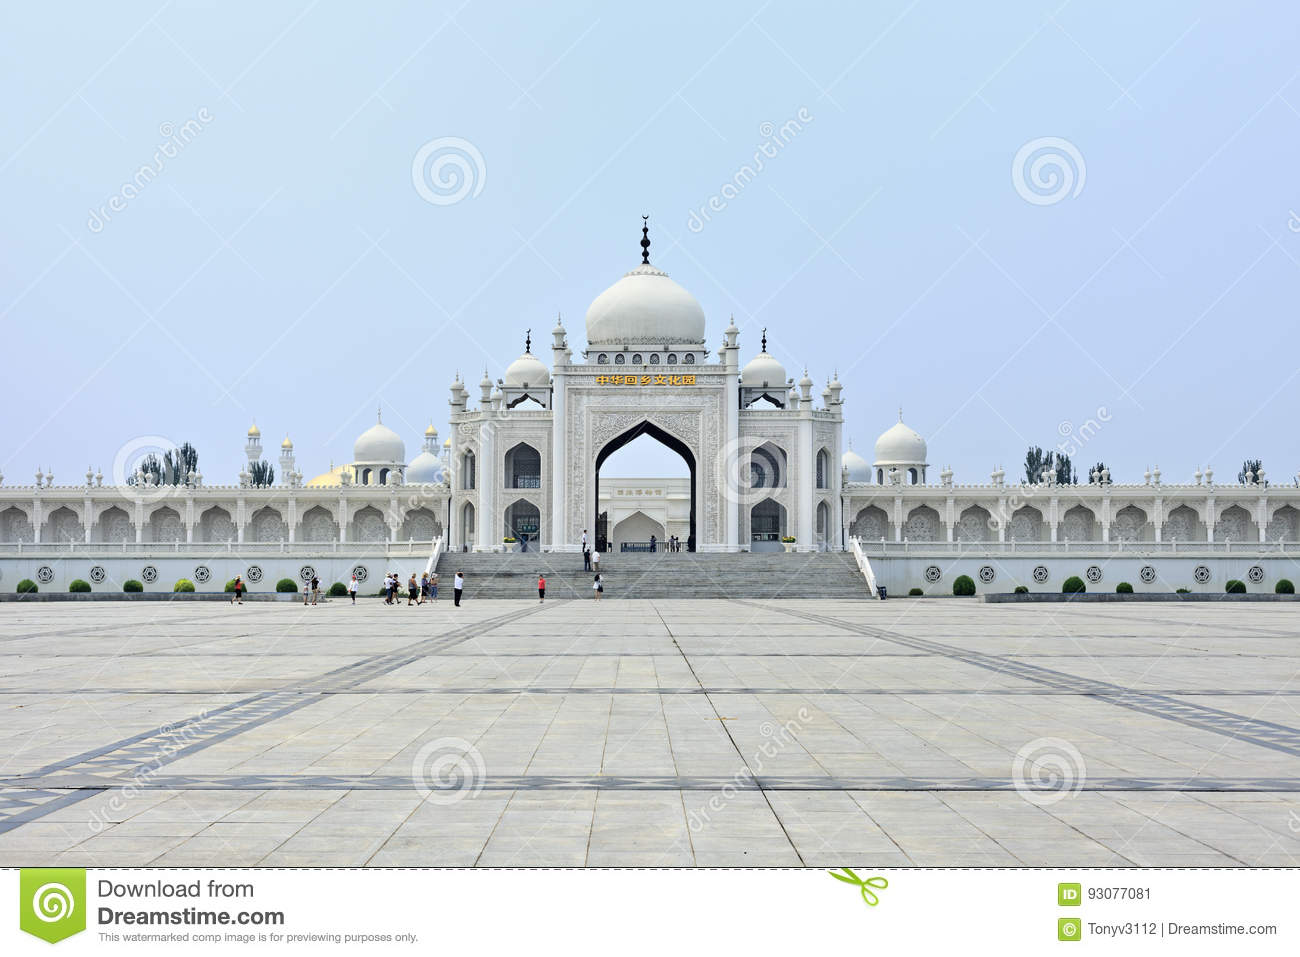 White mosque at the Hui Cultural center in Yinchuan, Ningxia Province, China